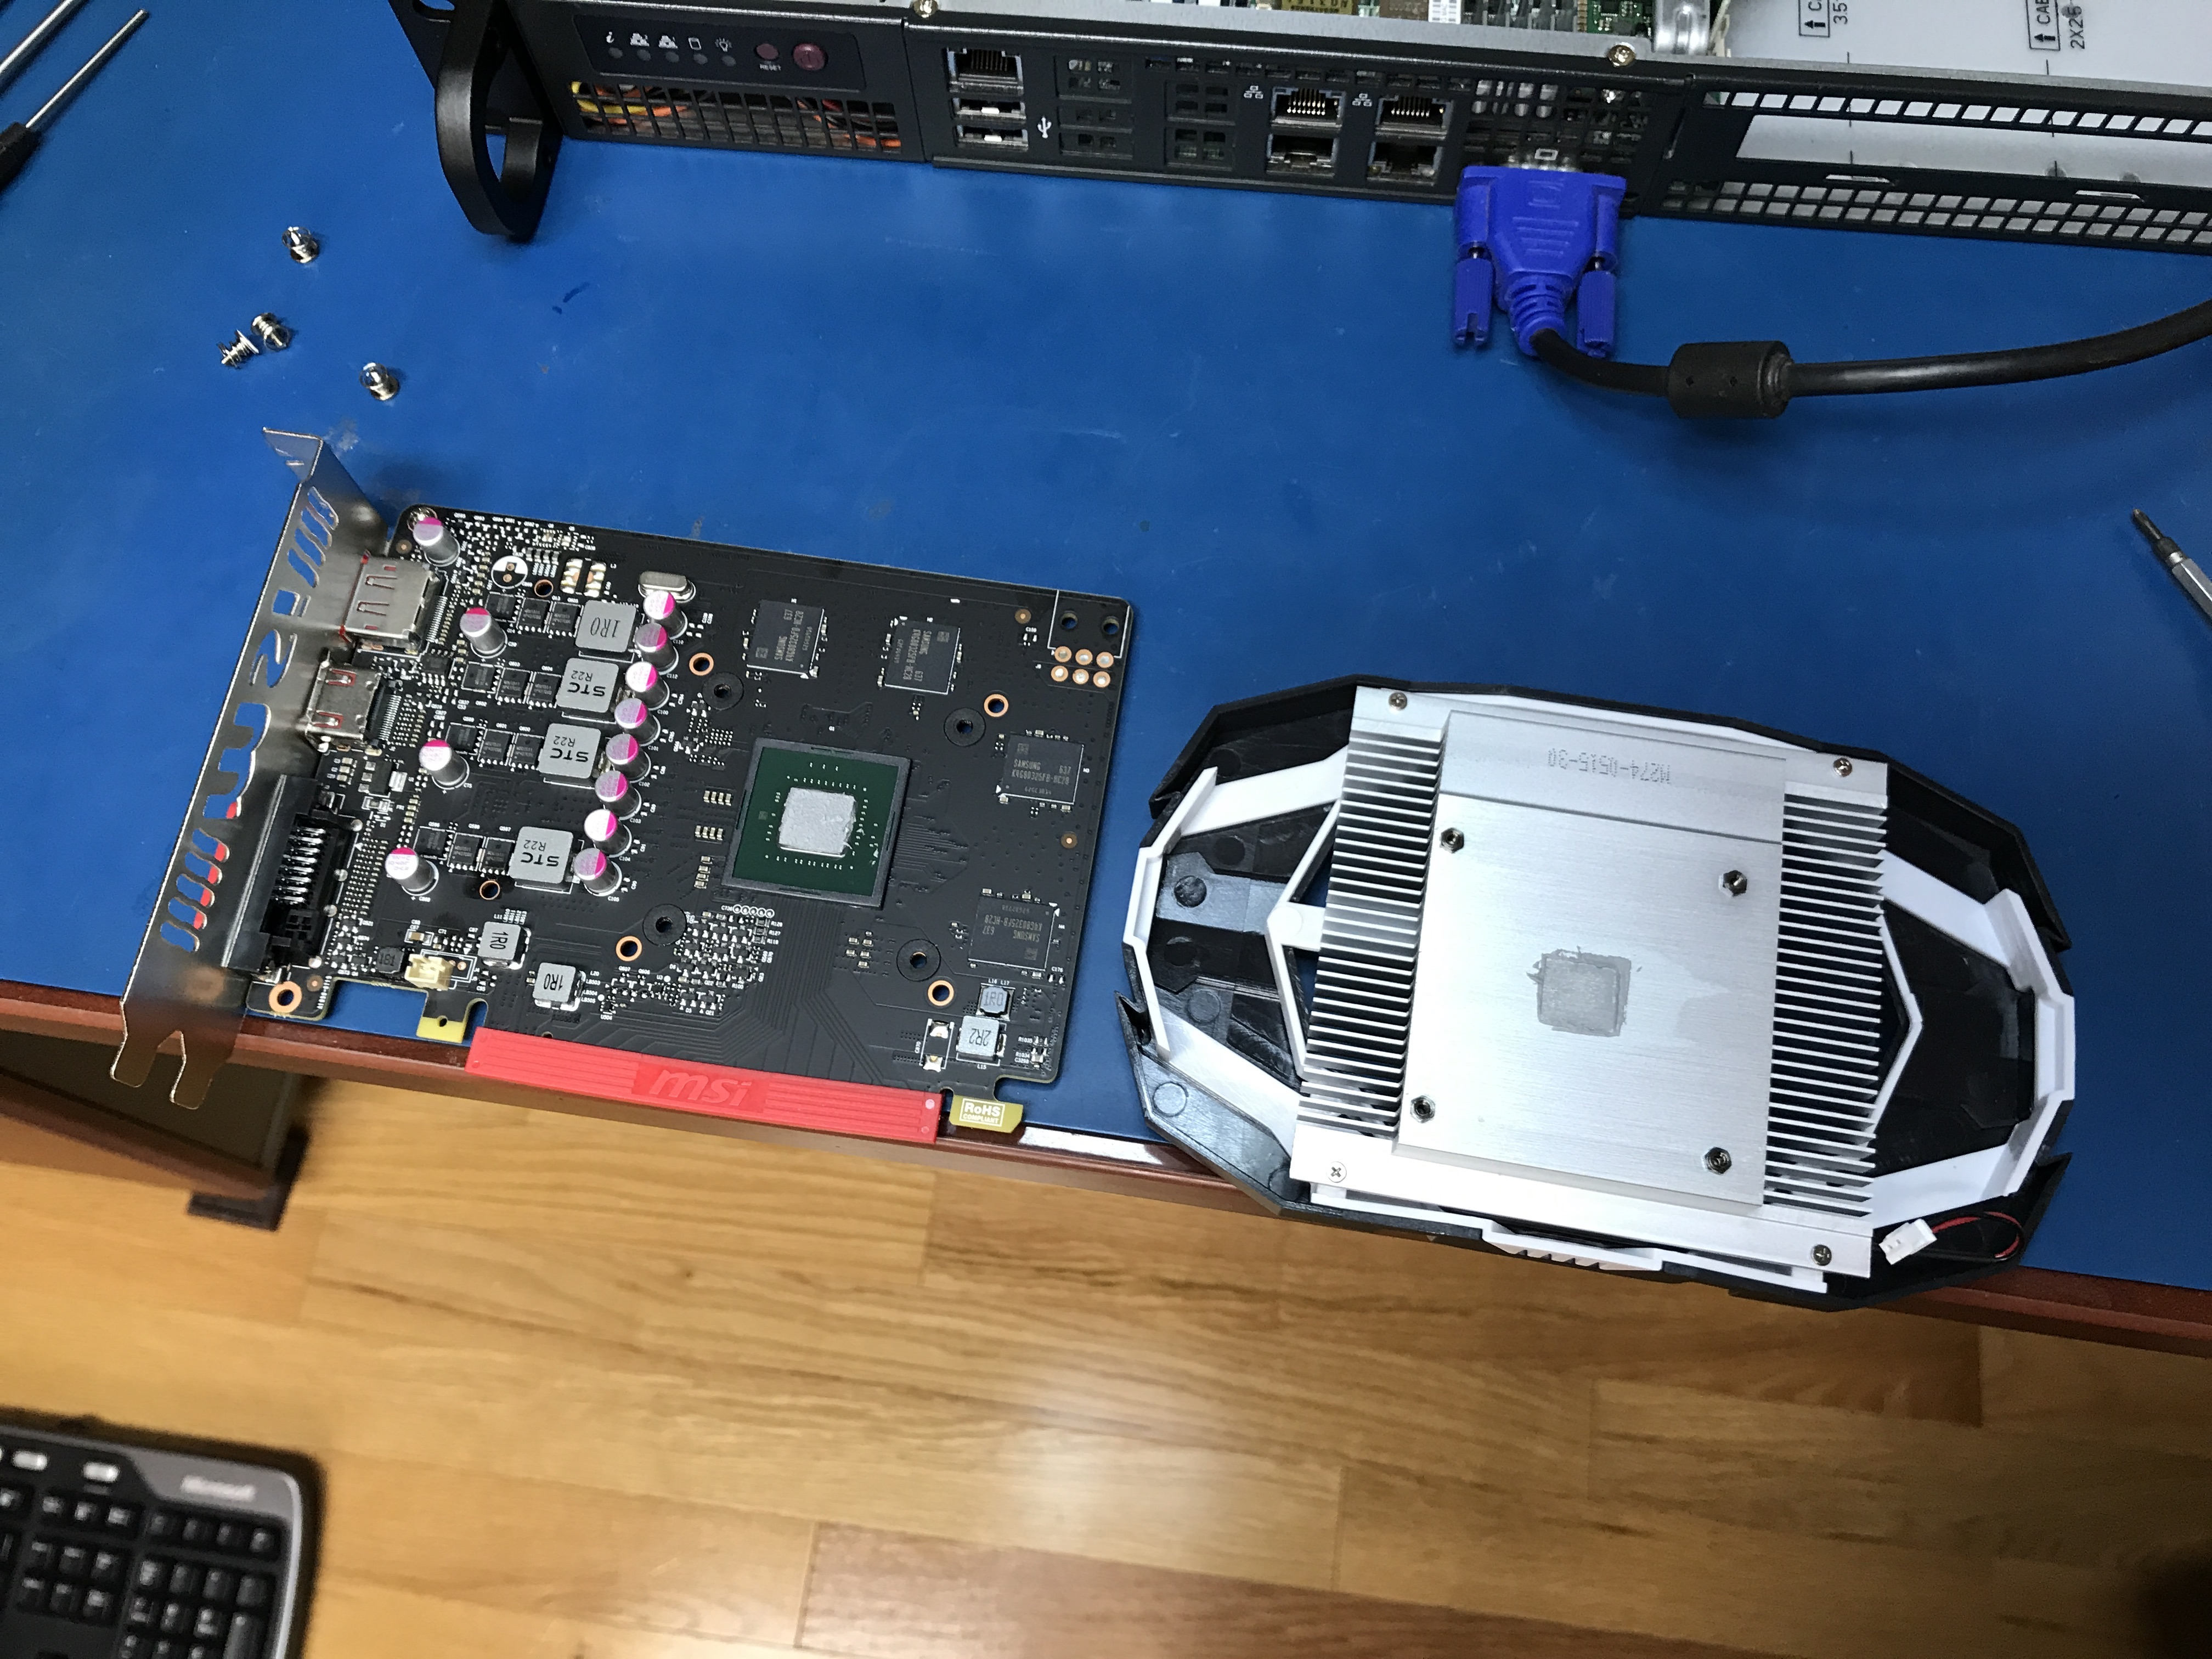 How to disconnect a video card